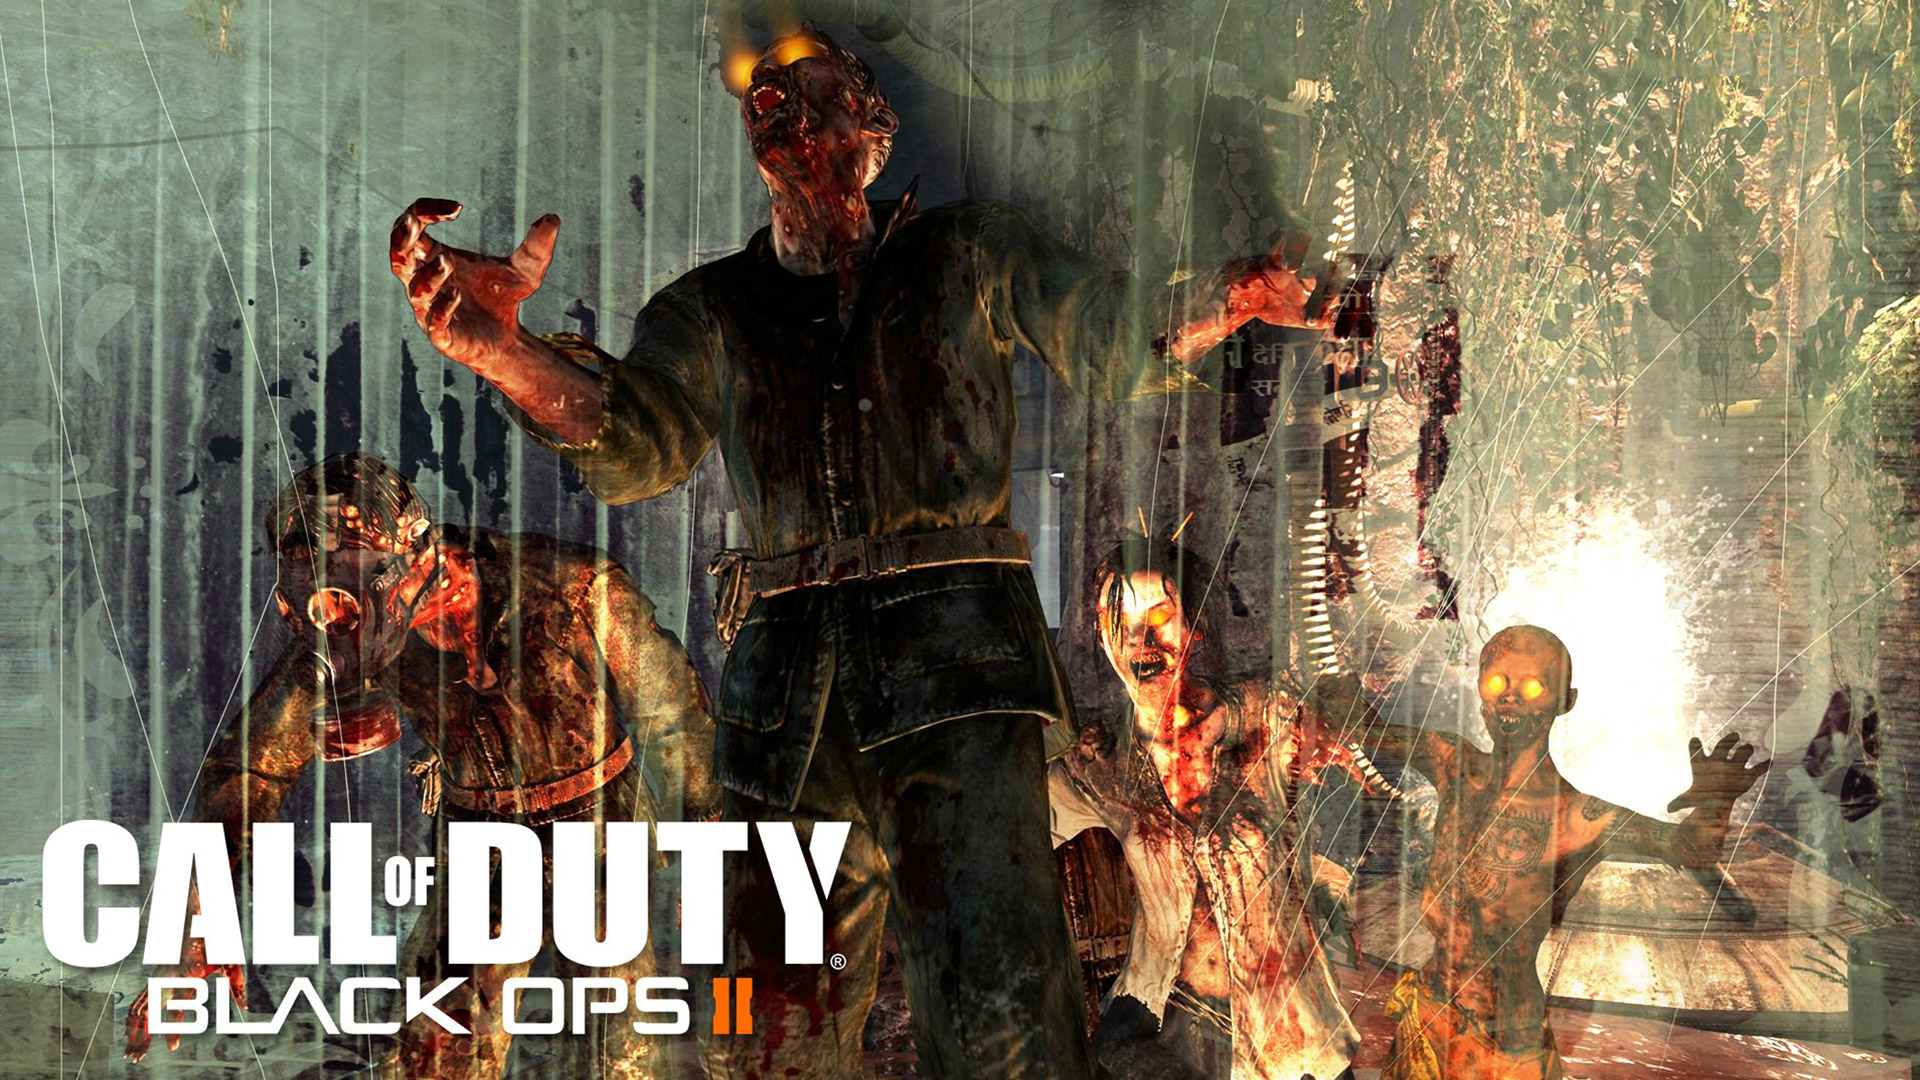 Call Of Duty Black Ops 2 Wallpaper 7